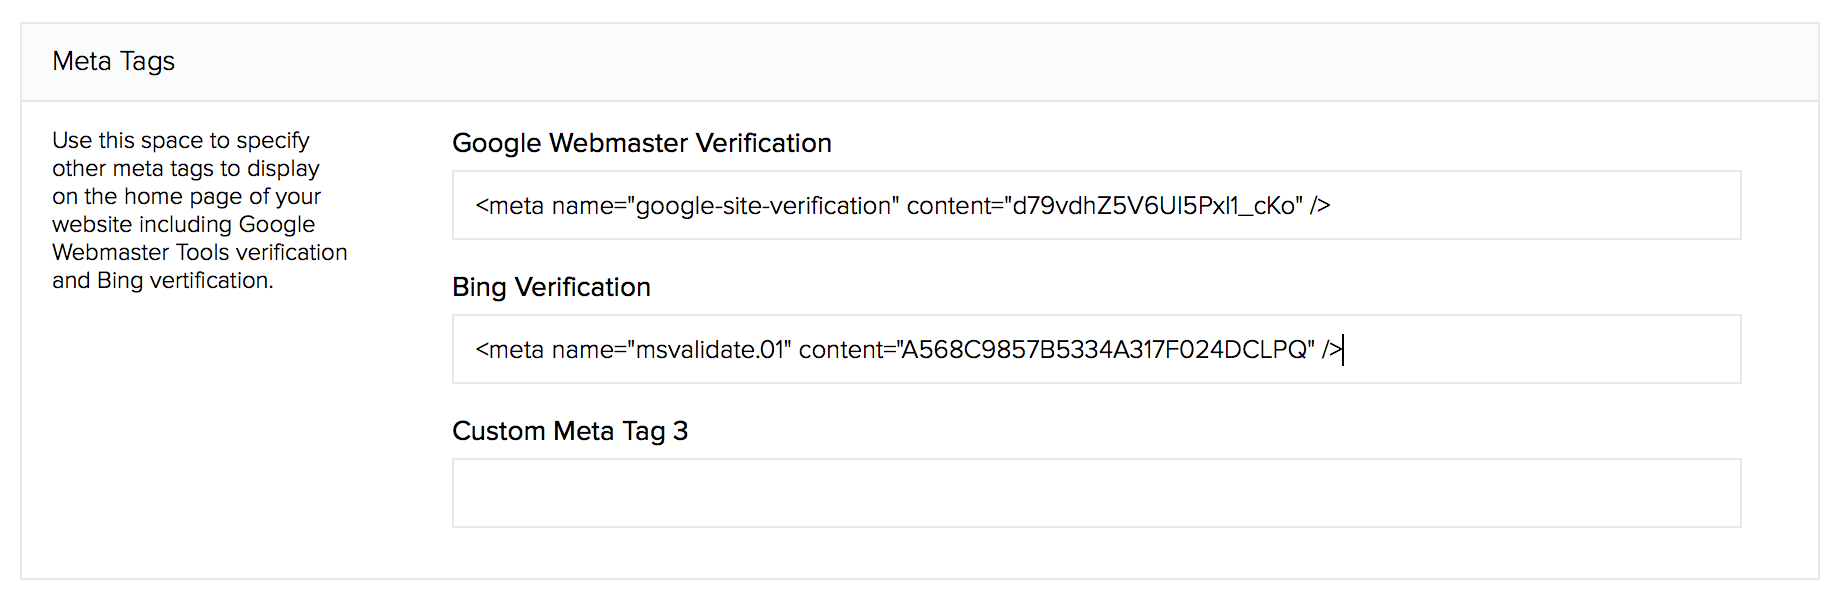 Where to enter meta tags provided by Google Webmaster Tools or Bing